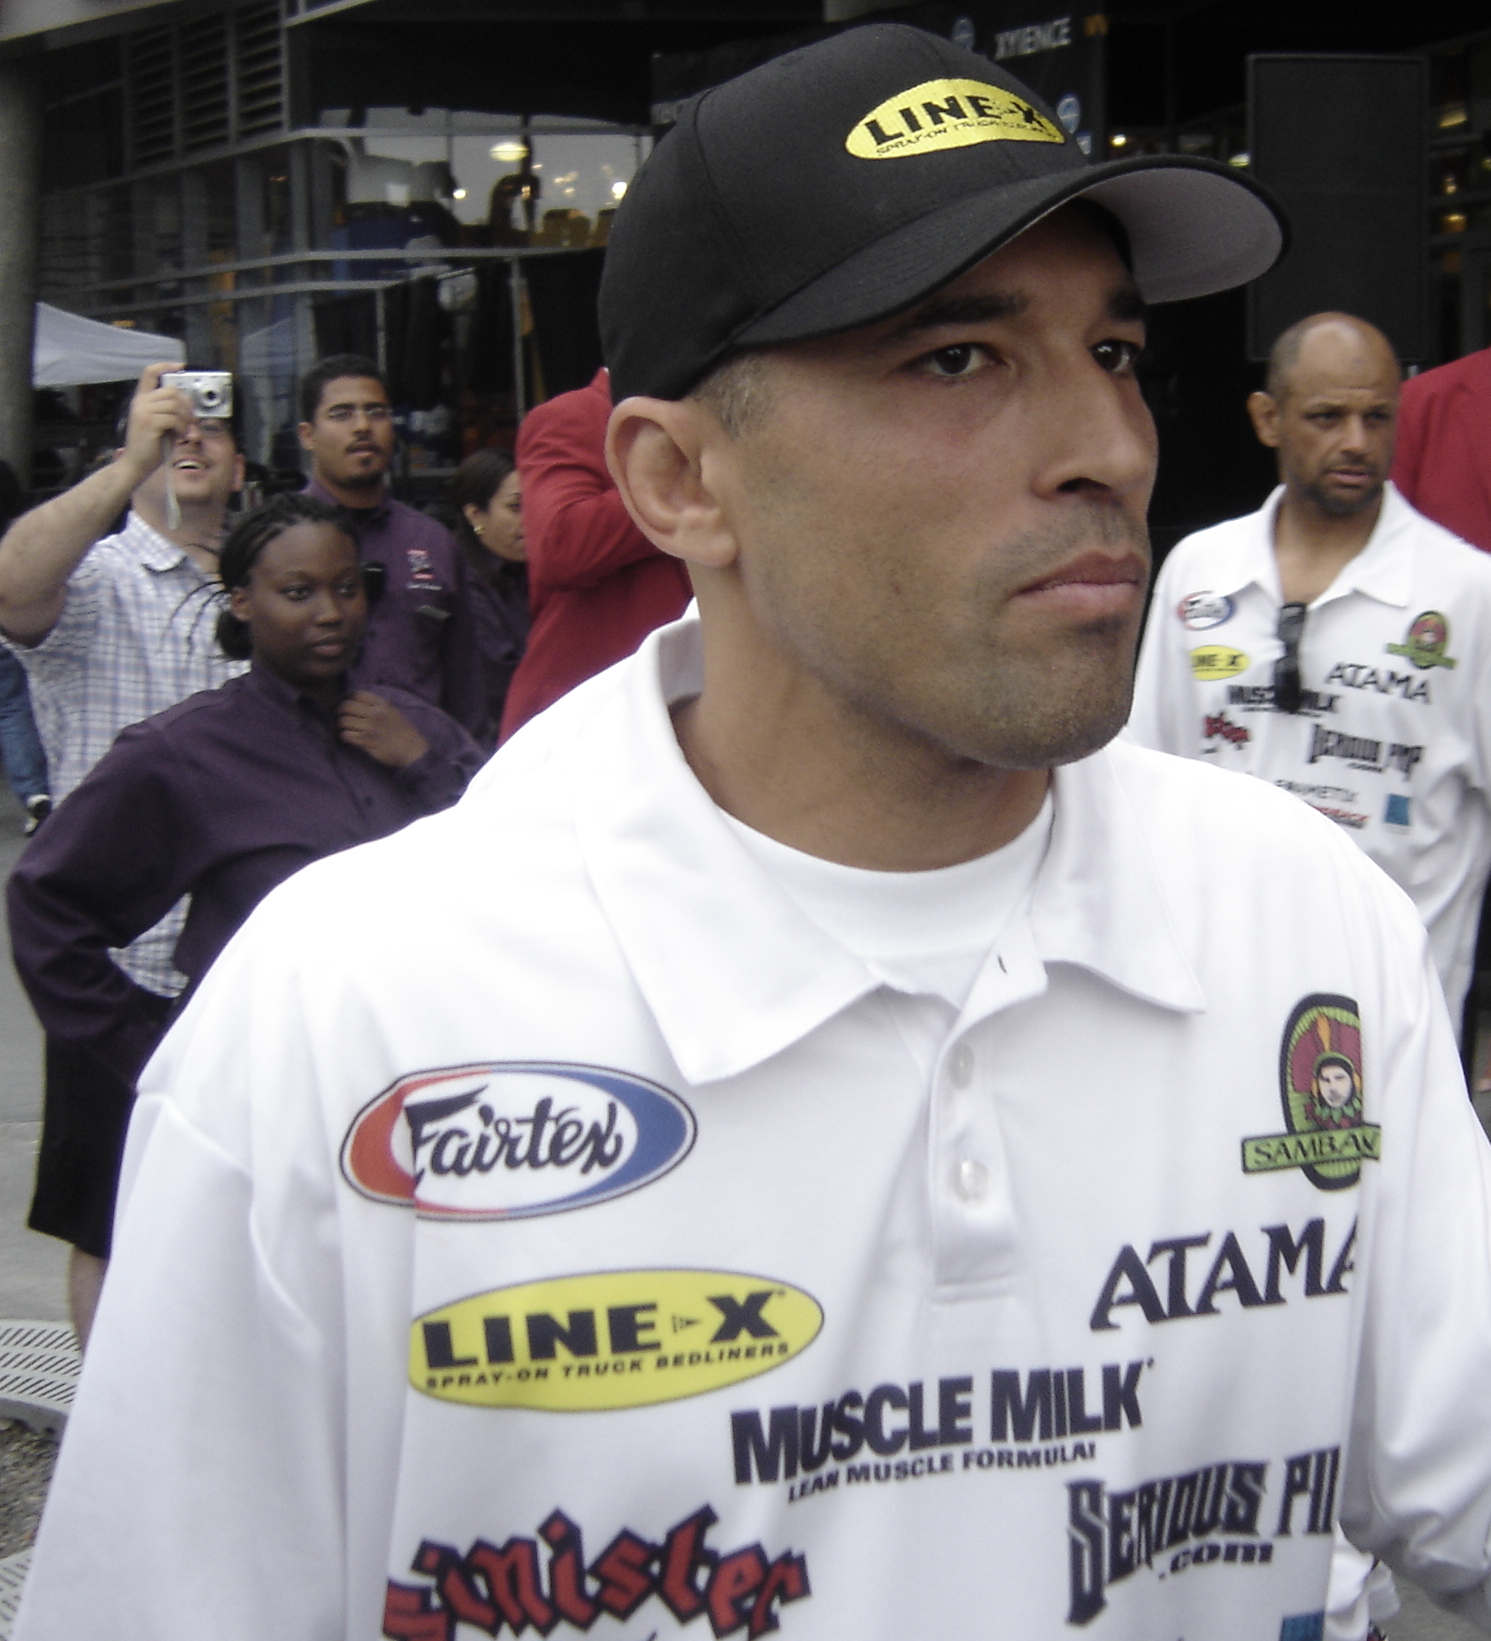 Depiction of Royce Gracie